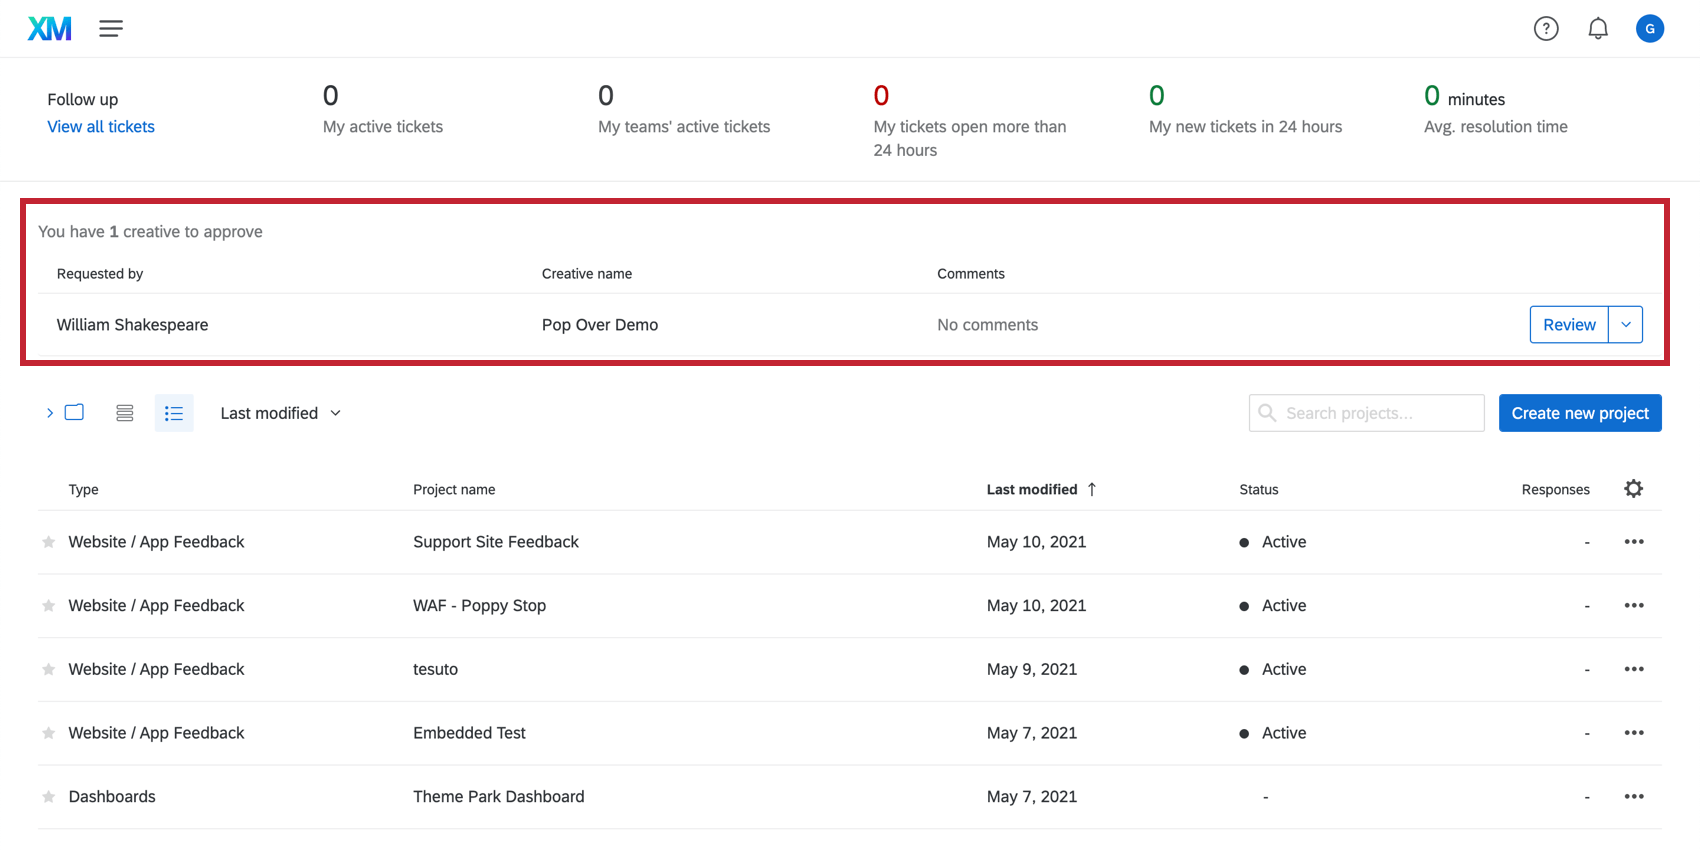 Pending approval requests at the top of the Projects page